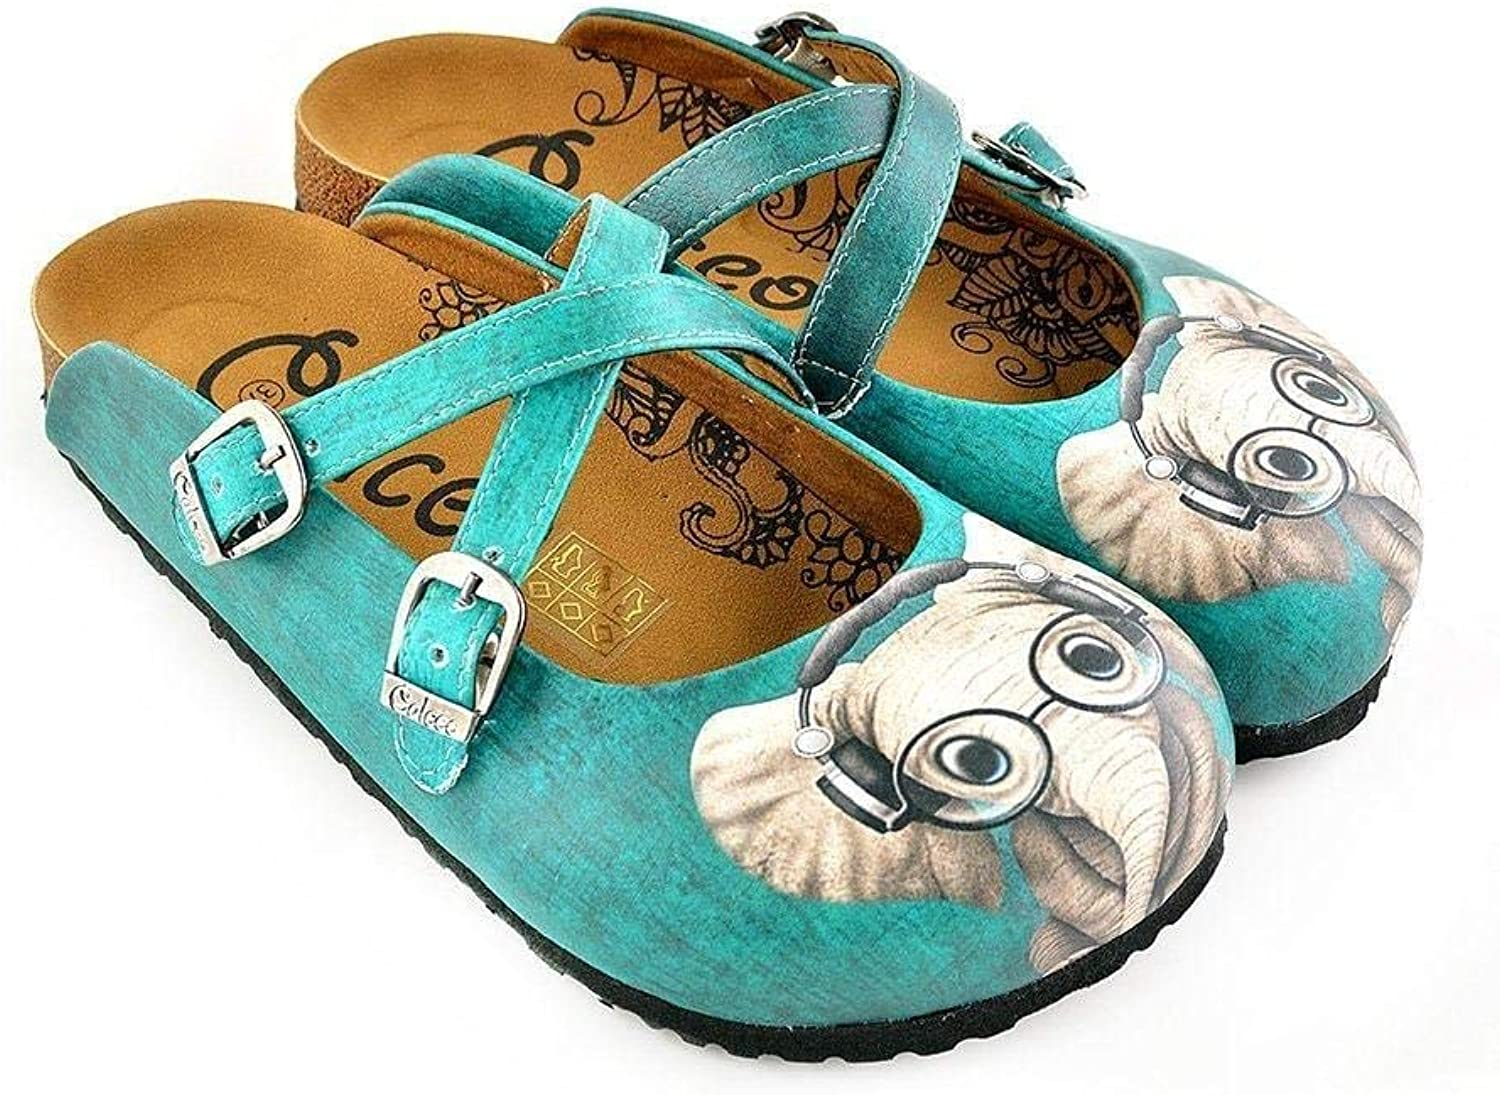 GOBY Women's shoes ''Teal Elephant Clogs'' Sandals 'WCAL140'